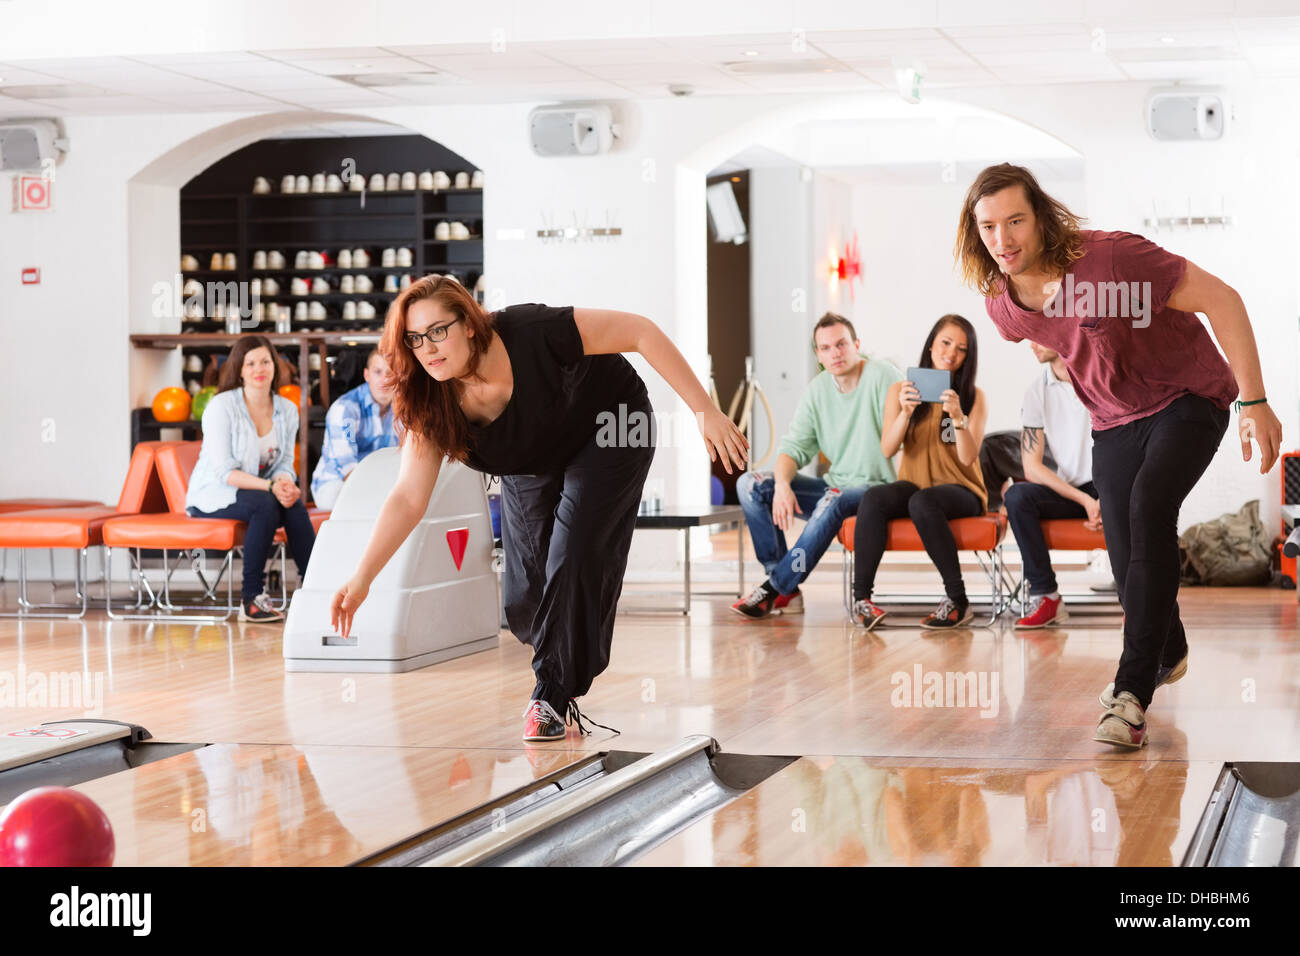 Man And Woman Playing in Bowling Alley - Stock Image